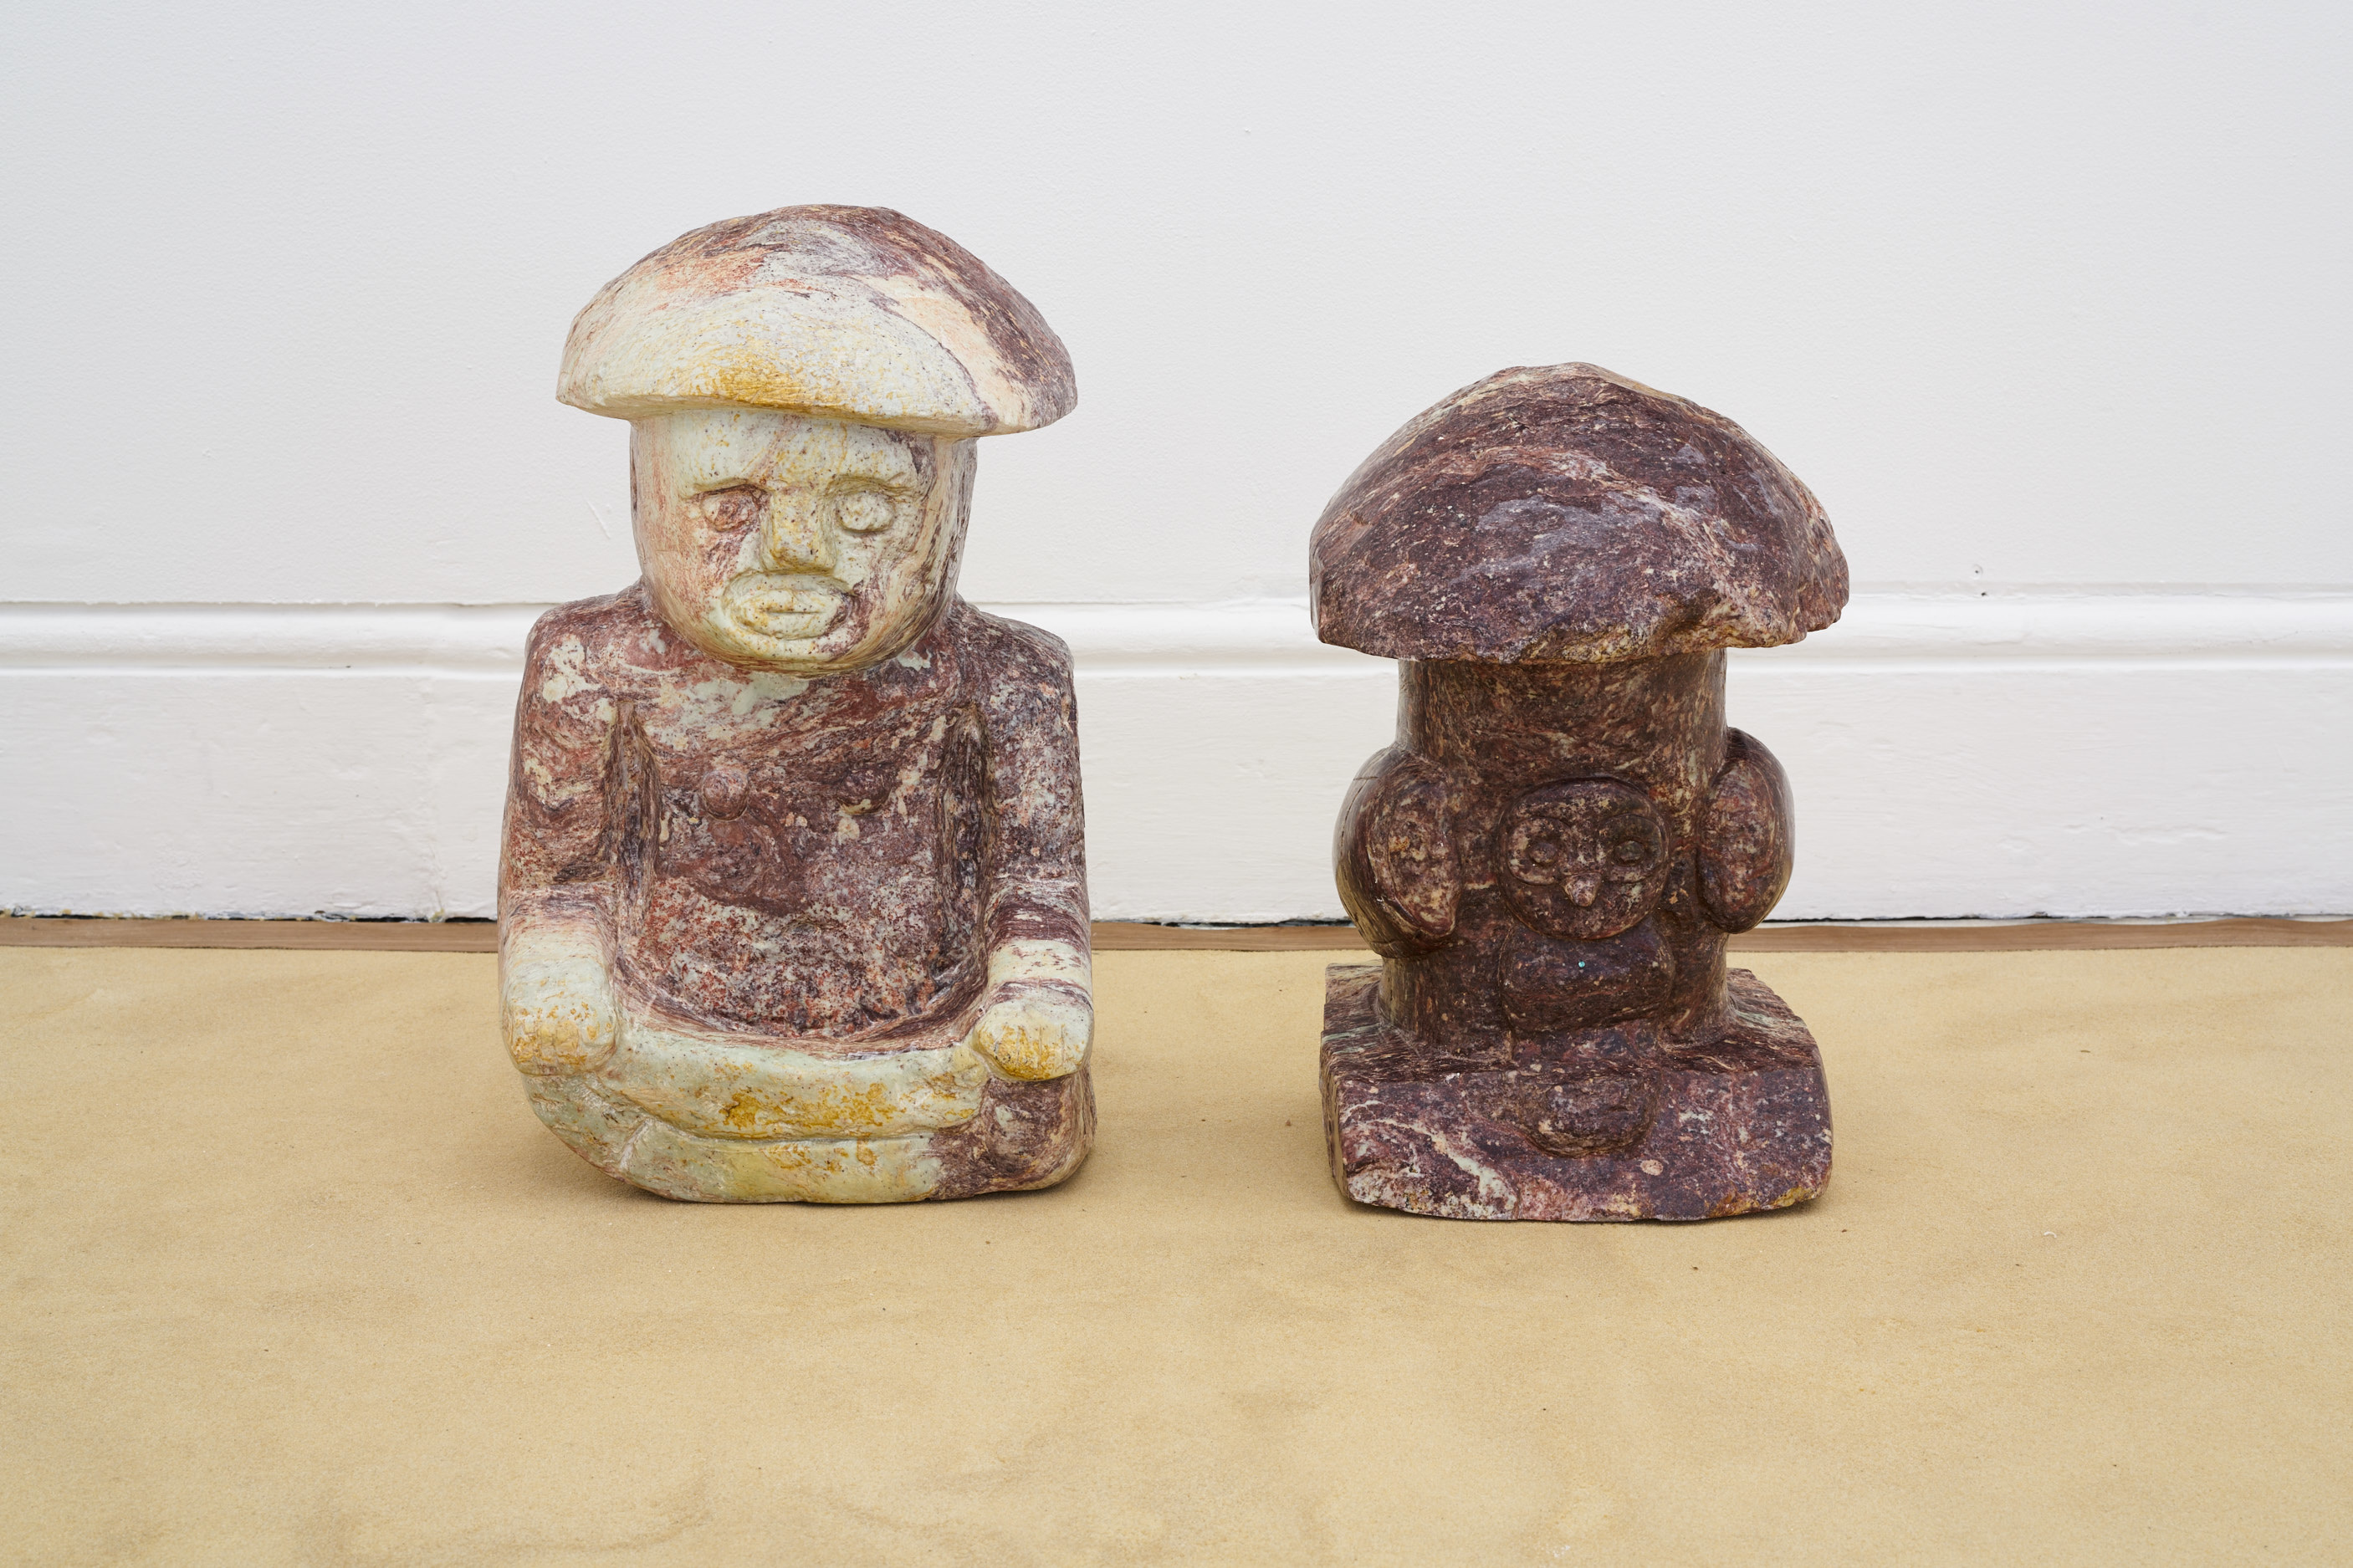 Andrea Zucchini, Twice Born, 2016. Hand carved stone replicas of Aztec artefacts. Tenderpixel.